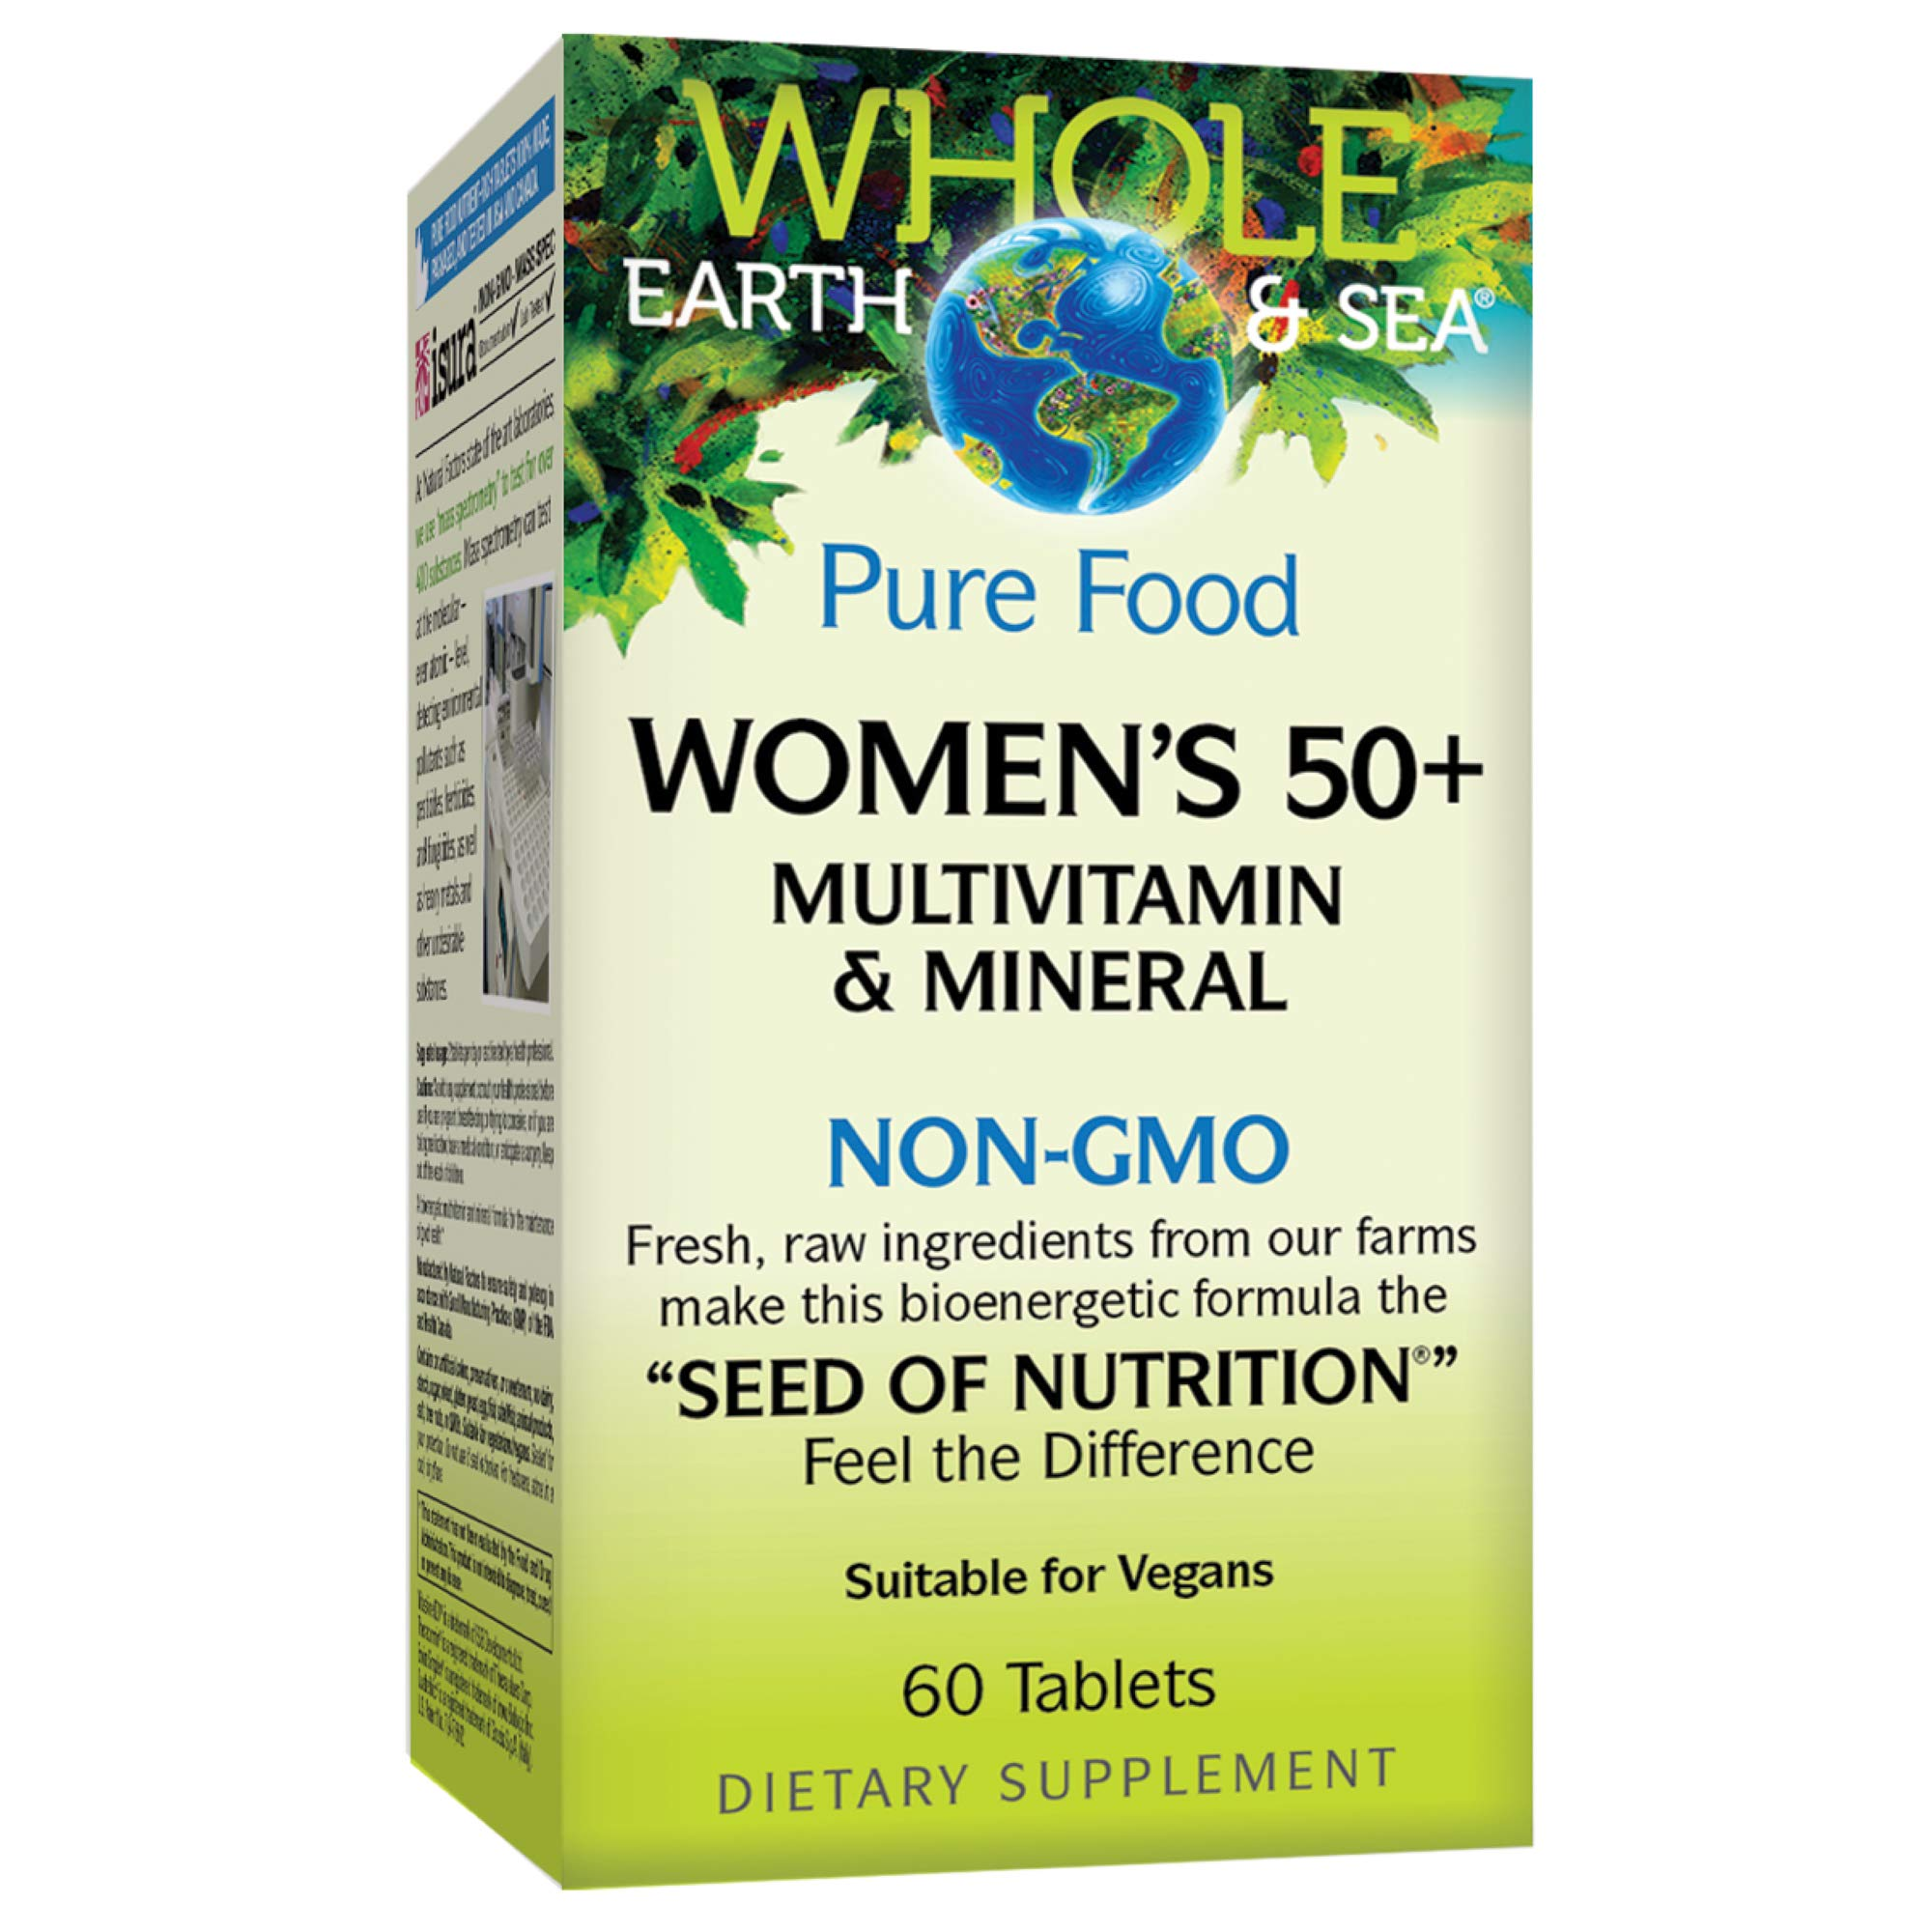 Whole Earth & Sea from Natural Factors, Women's 50+ Multivitamin & Mineral, Whole Food Supplement, Vegan and Gluten Free, 60 Tablets (30 Servings) by Natural Factors